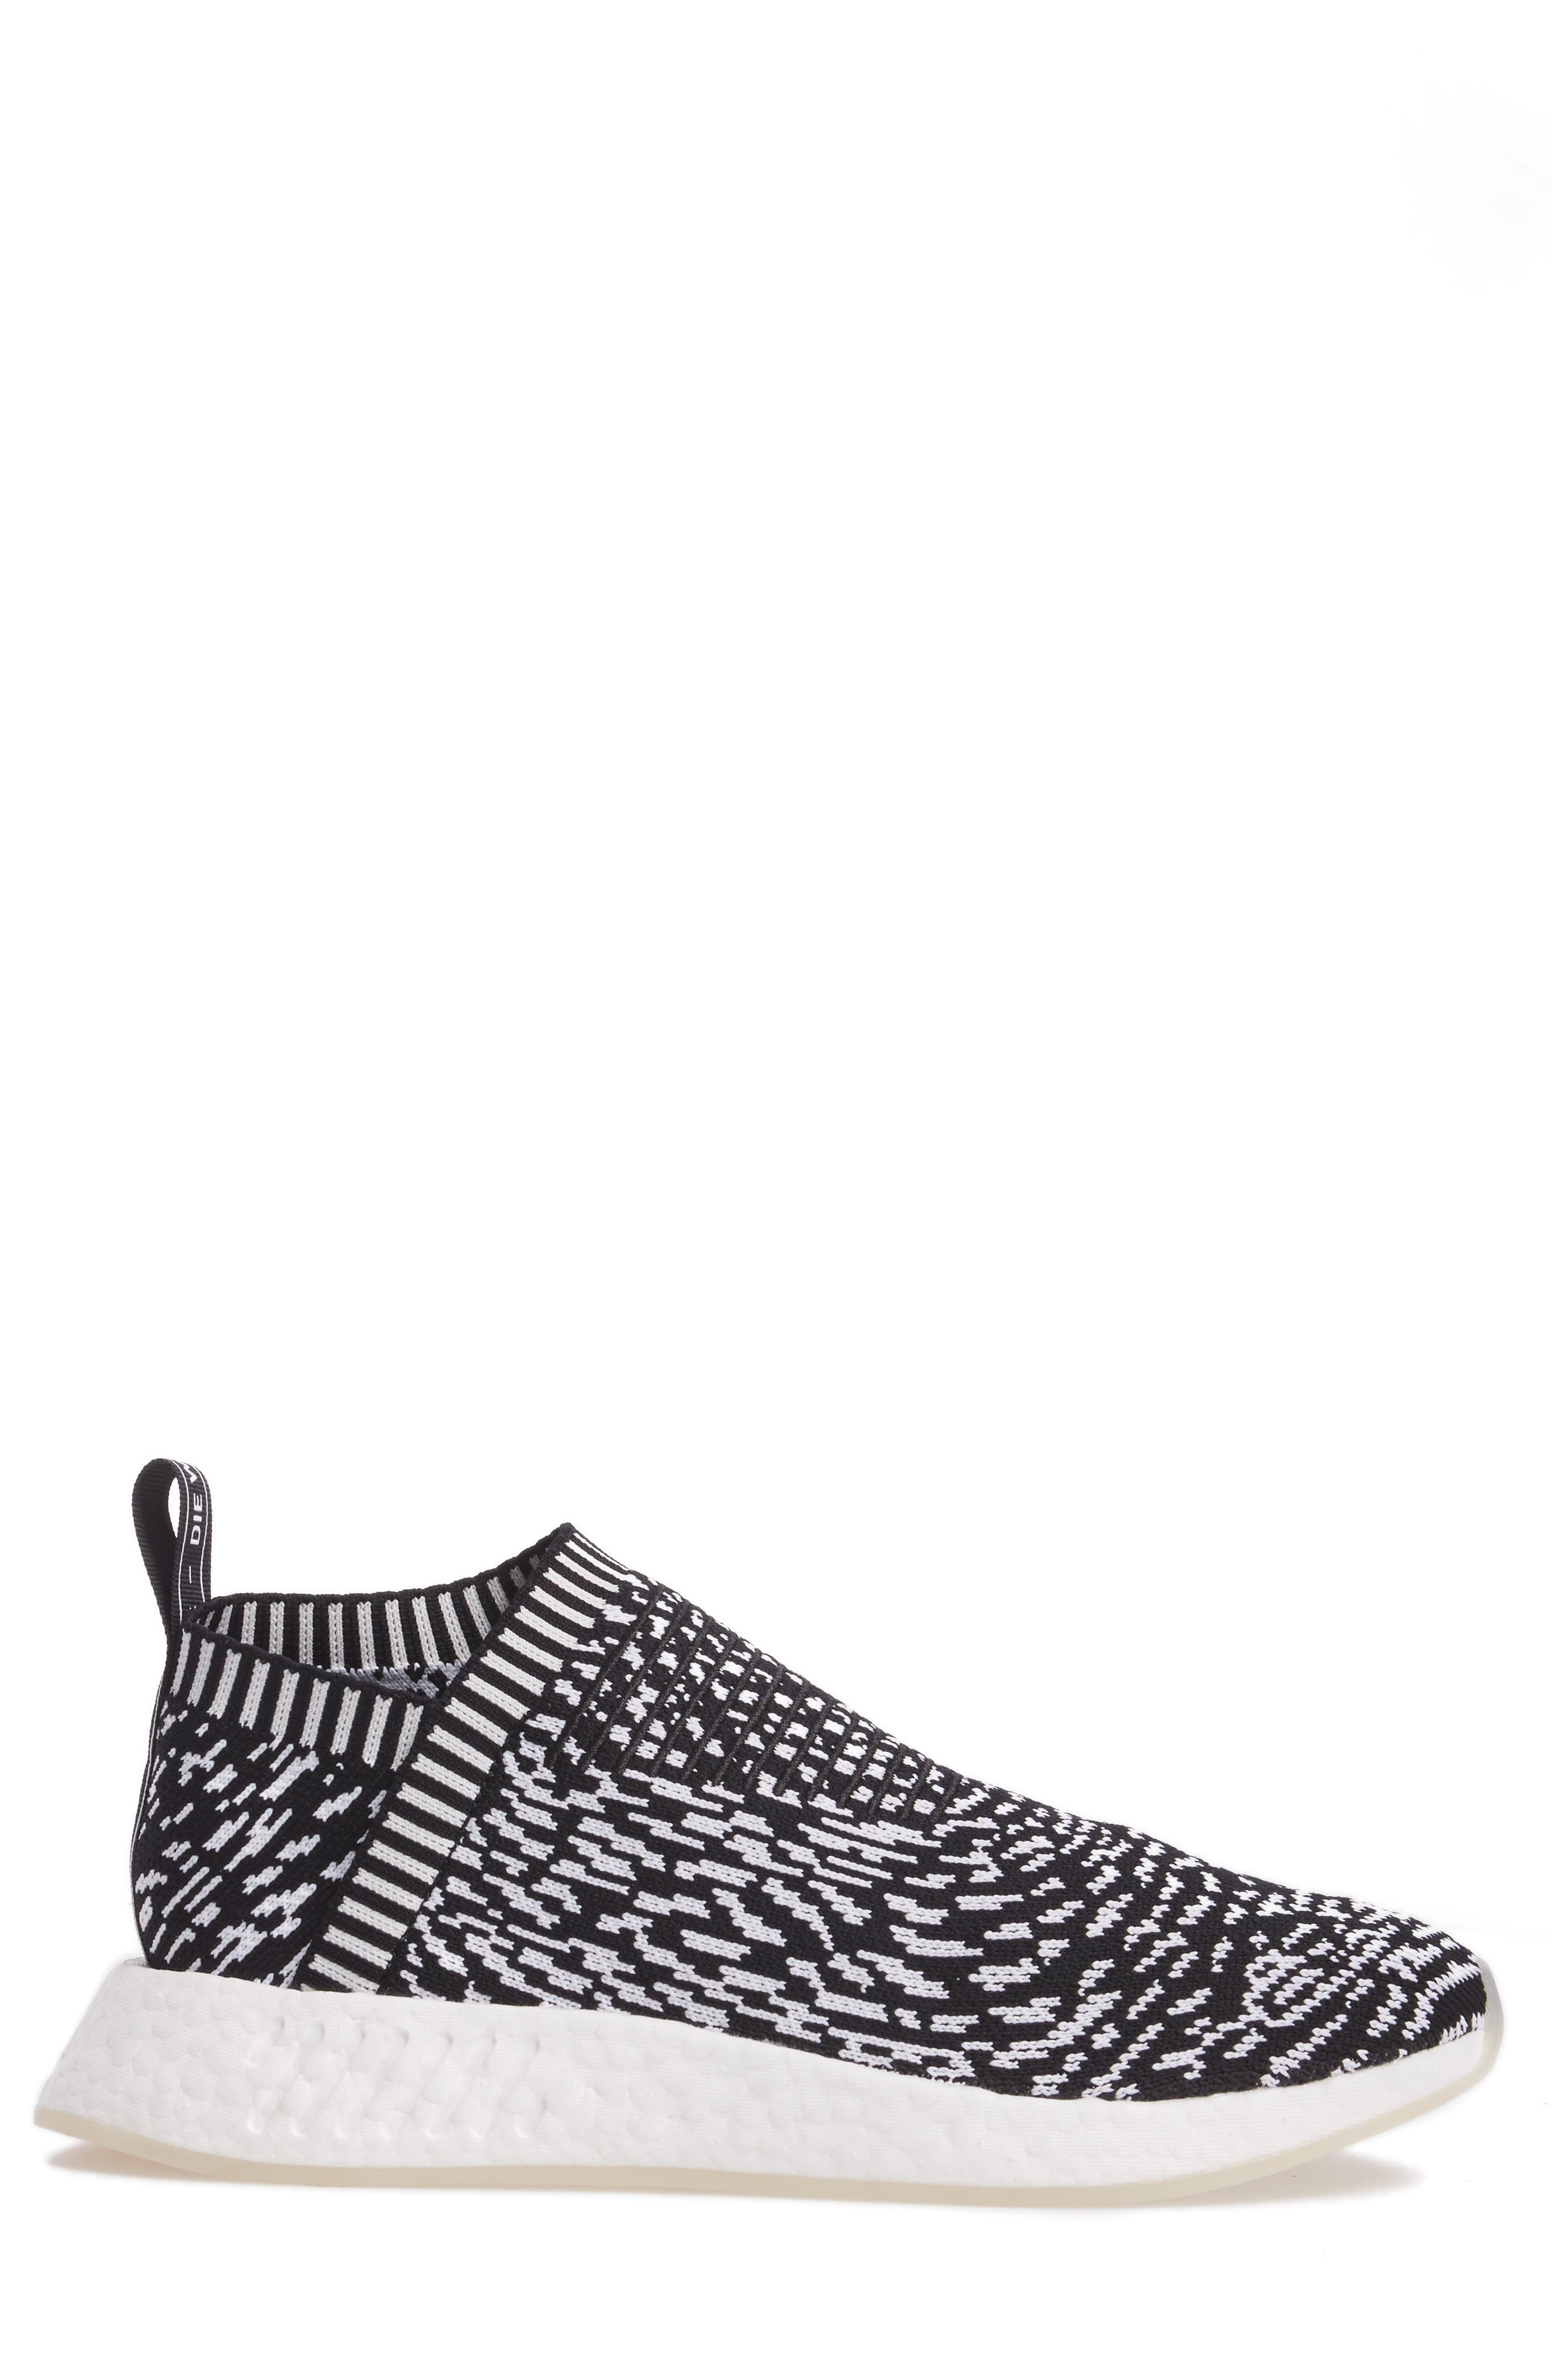 NMD_CS2 Primeknit Sneaker,                             Alternate thumbnail 3, color,